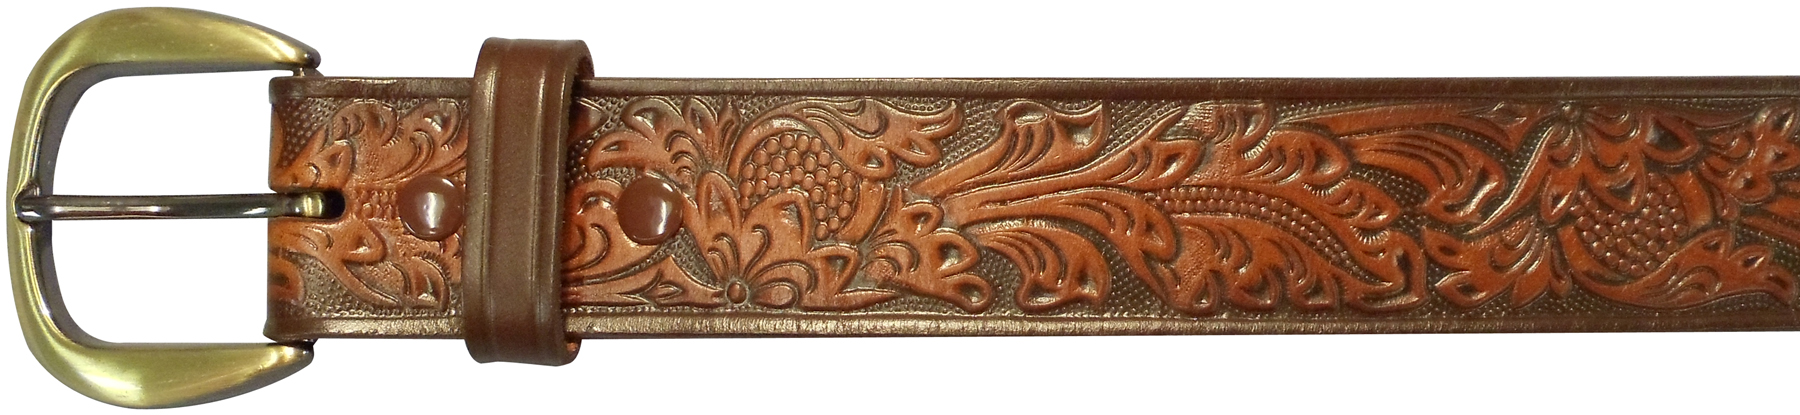 "10610110234 - 34"" Brown Leather Belt"